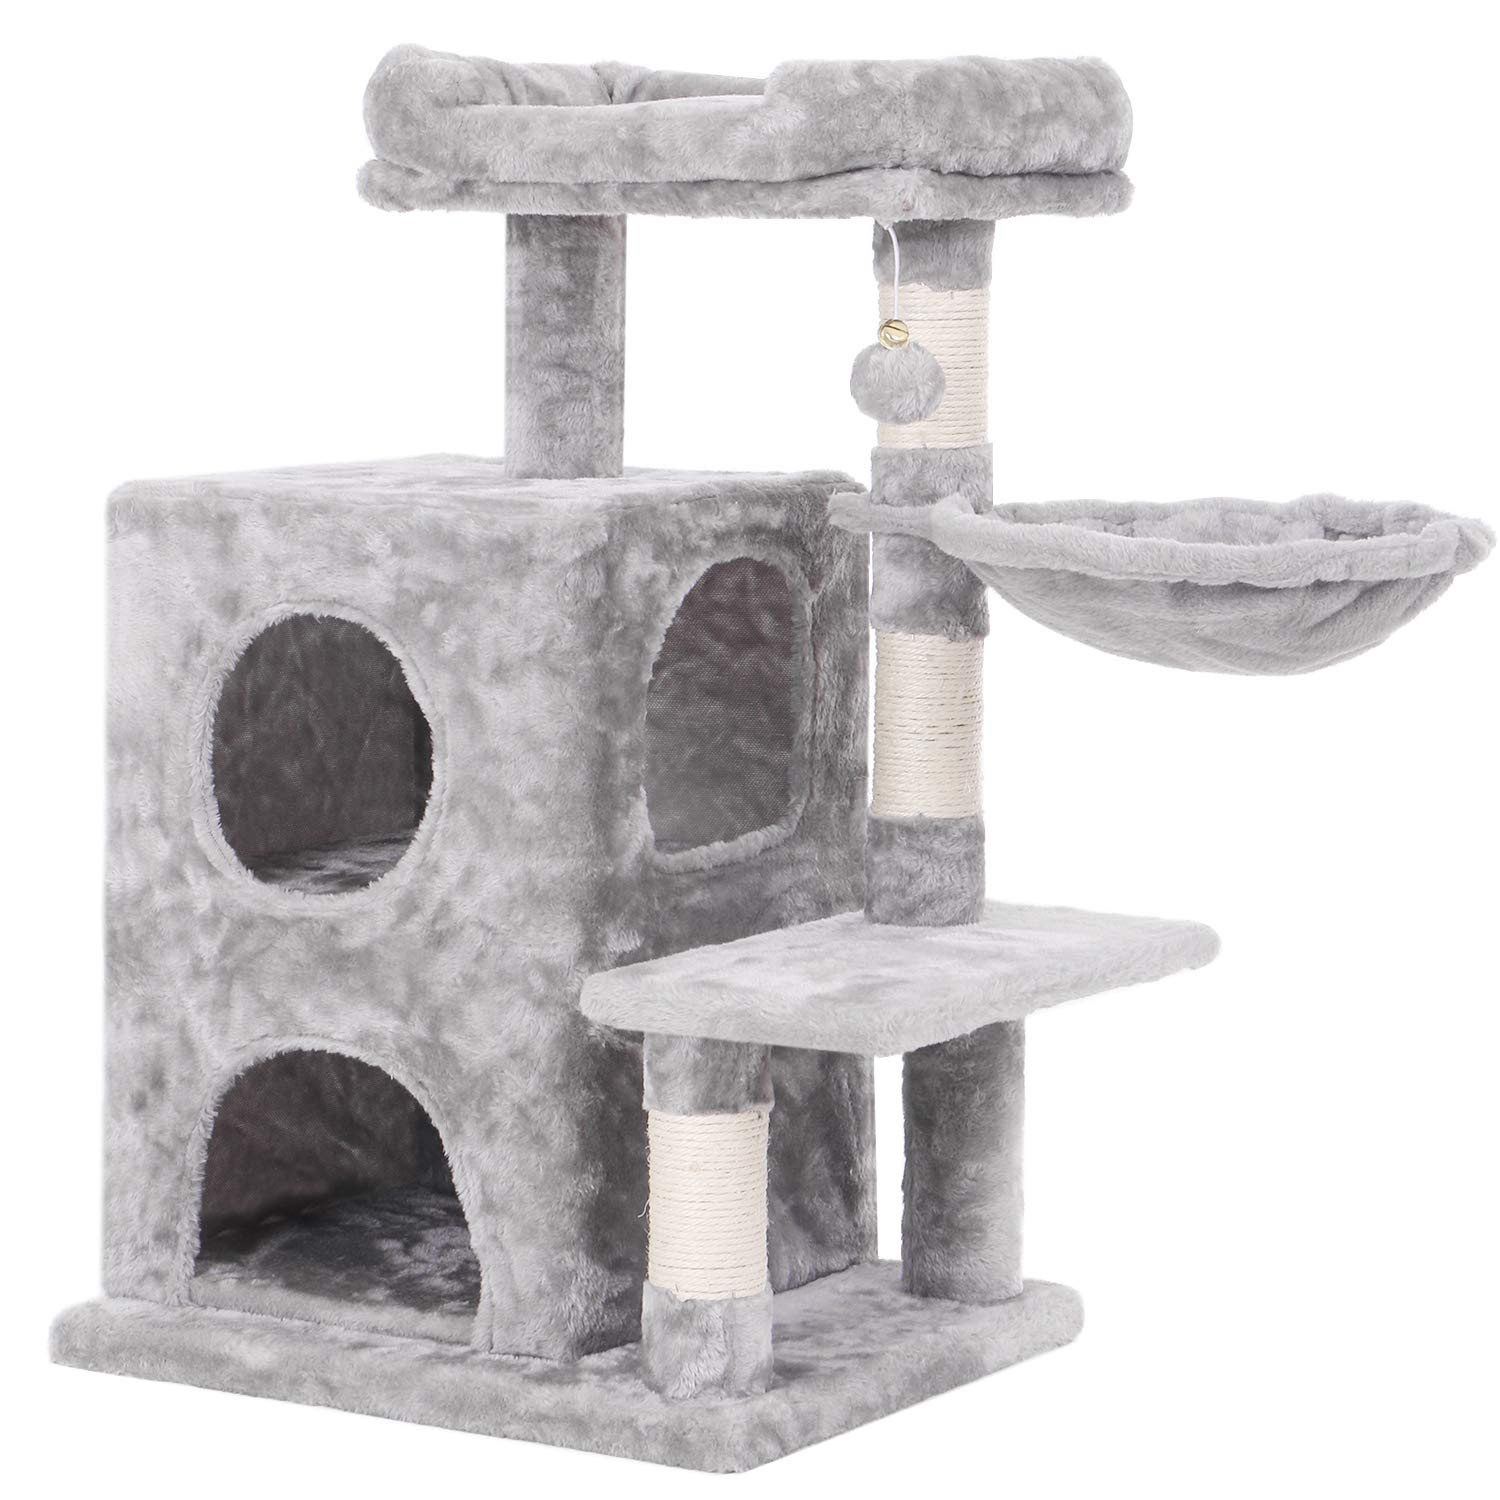 BEWISHOME Cat Tree Condo with Sisal Scratching Posts, Plush Perch, Dual Houses and Basket, Cat Tower Furniture Kitty Activity Center Kitten Play House, Light Grey MMJ06L by BEWISHOME